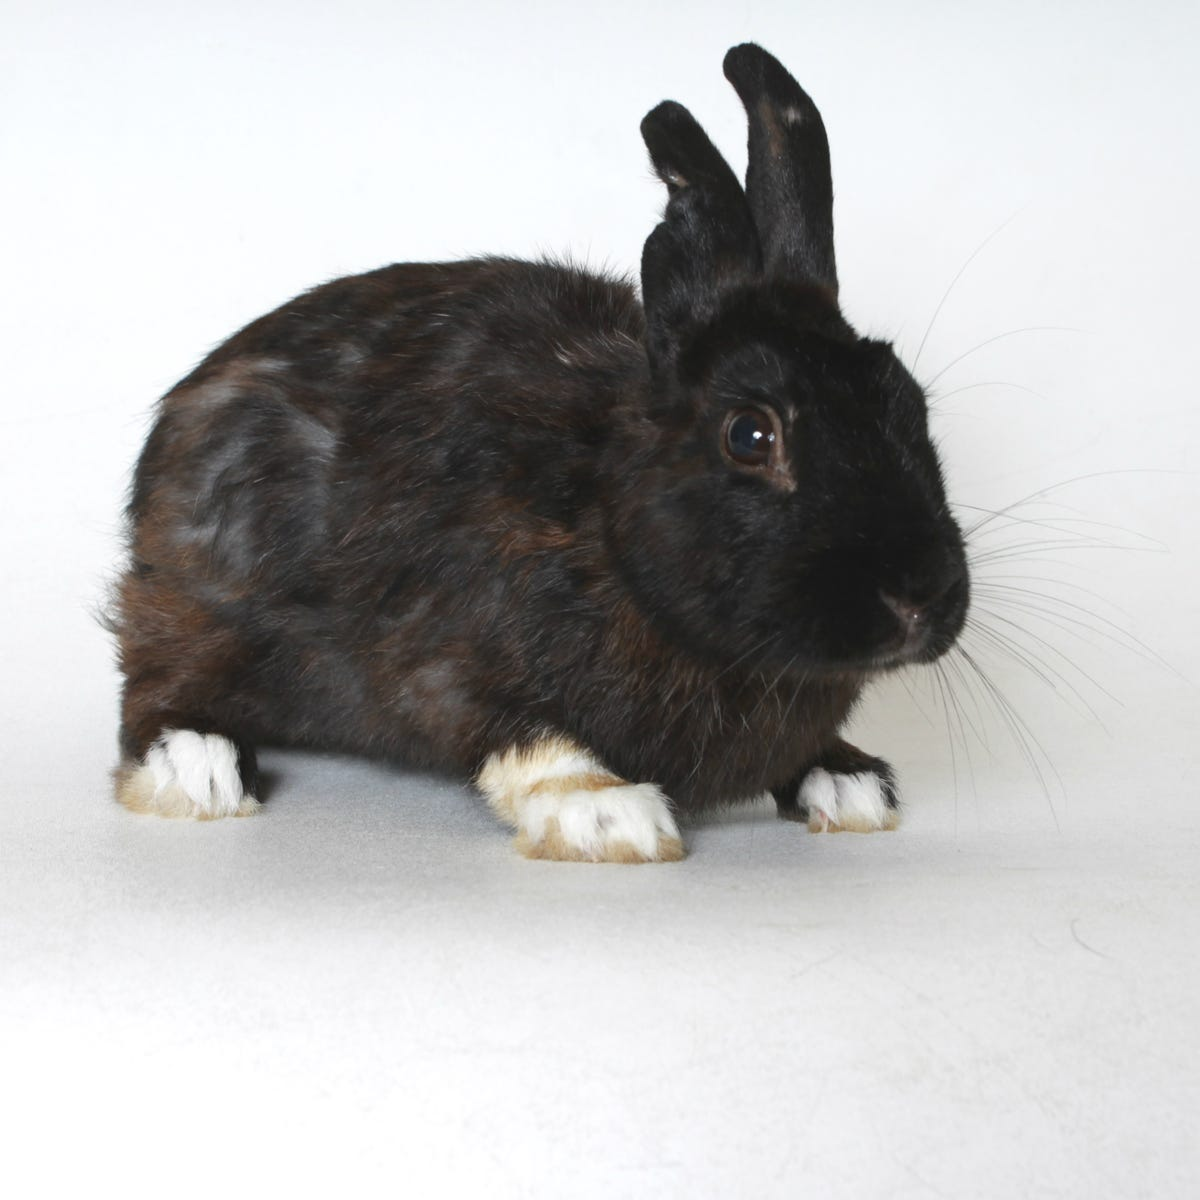 Rescues bring more choices than ever for bunny adoptions at HSTC